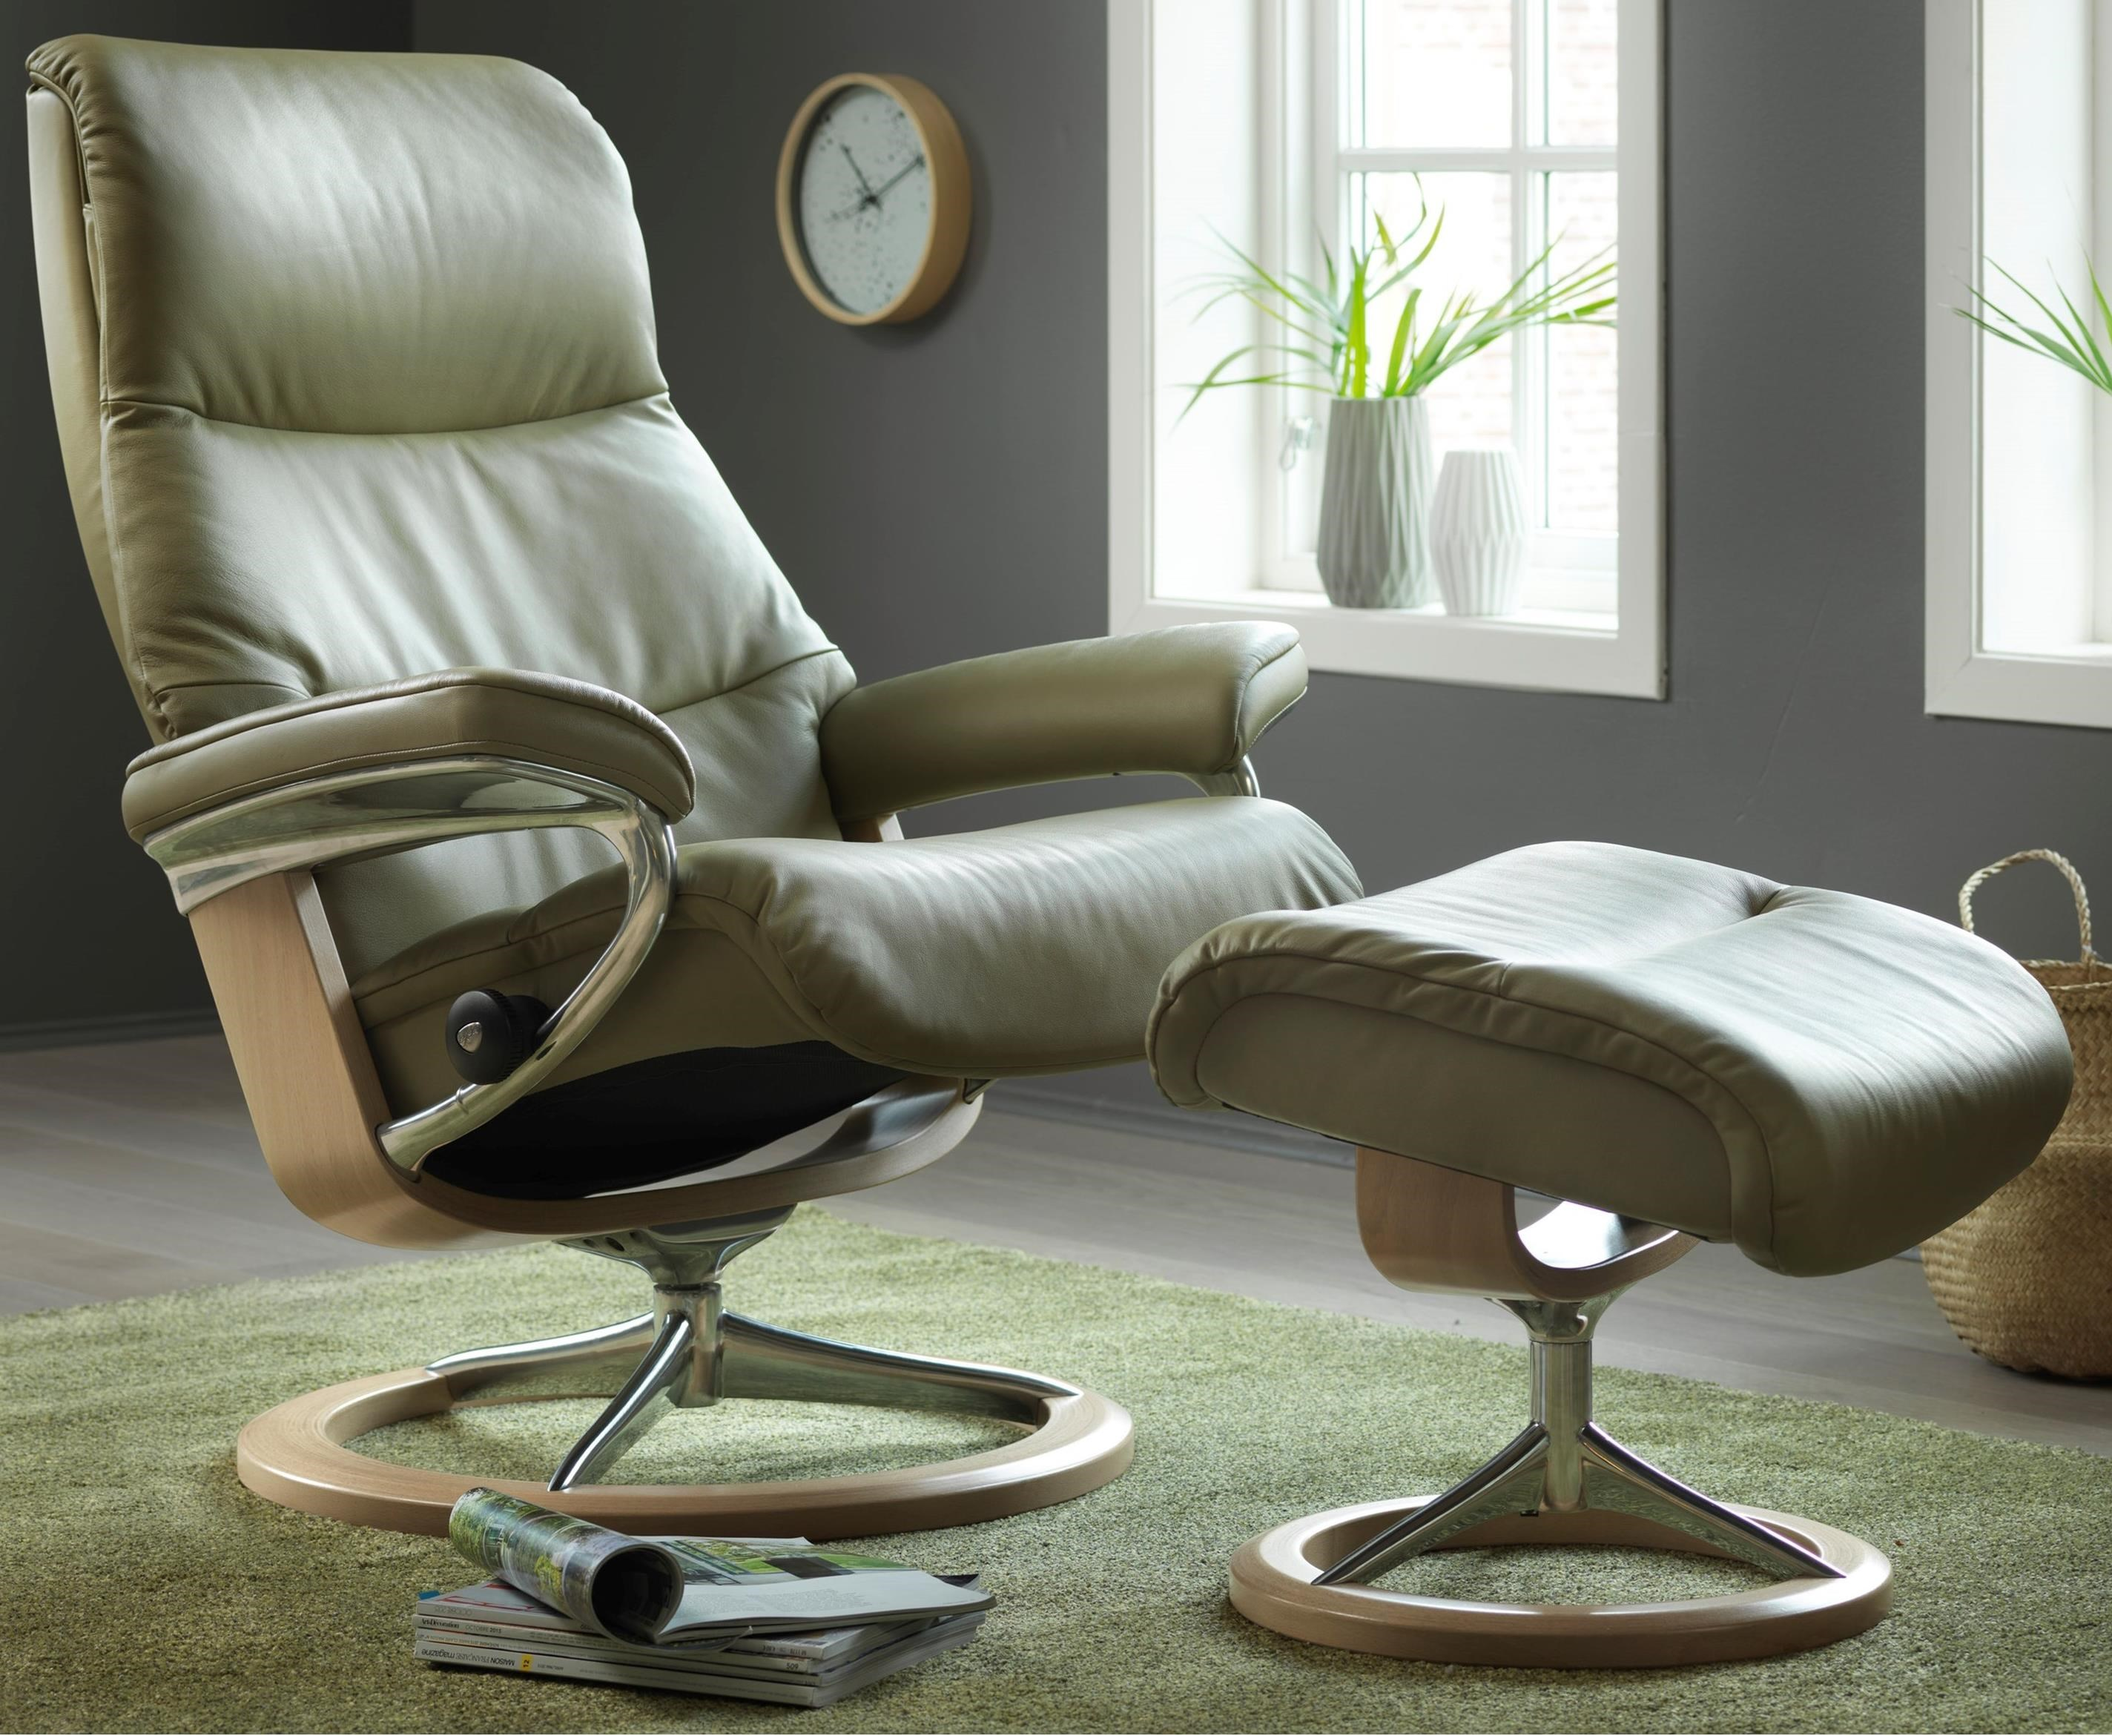 View Small Chair & Ottoman with Signature Base by Stressless at Bennett's Furniture and Mattresses